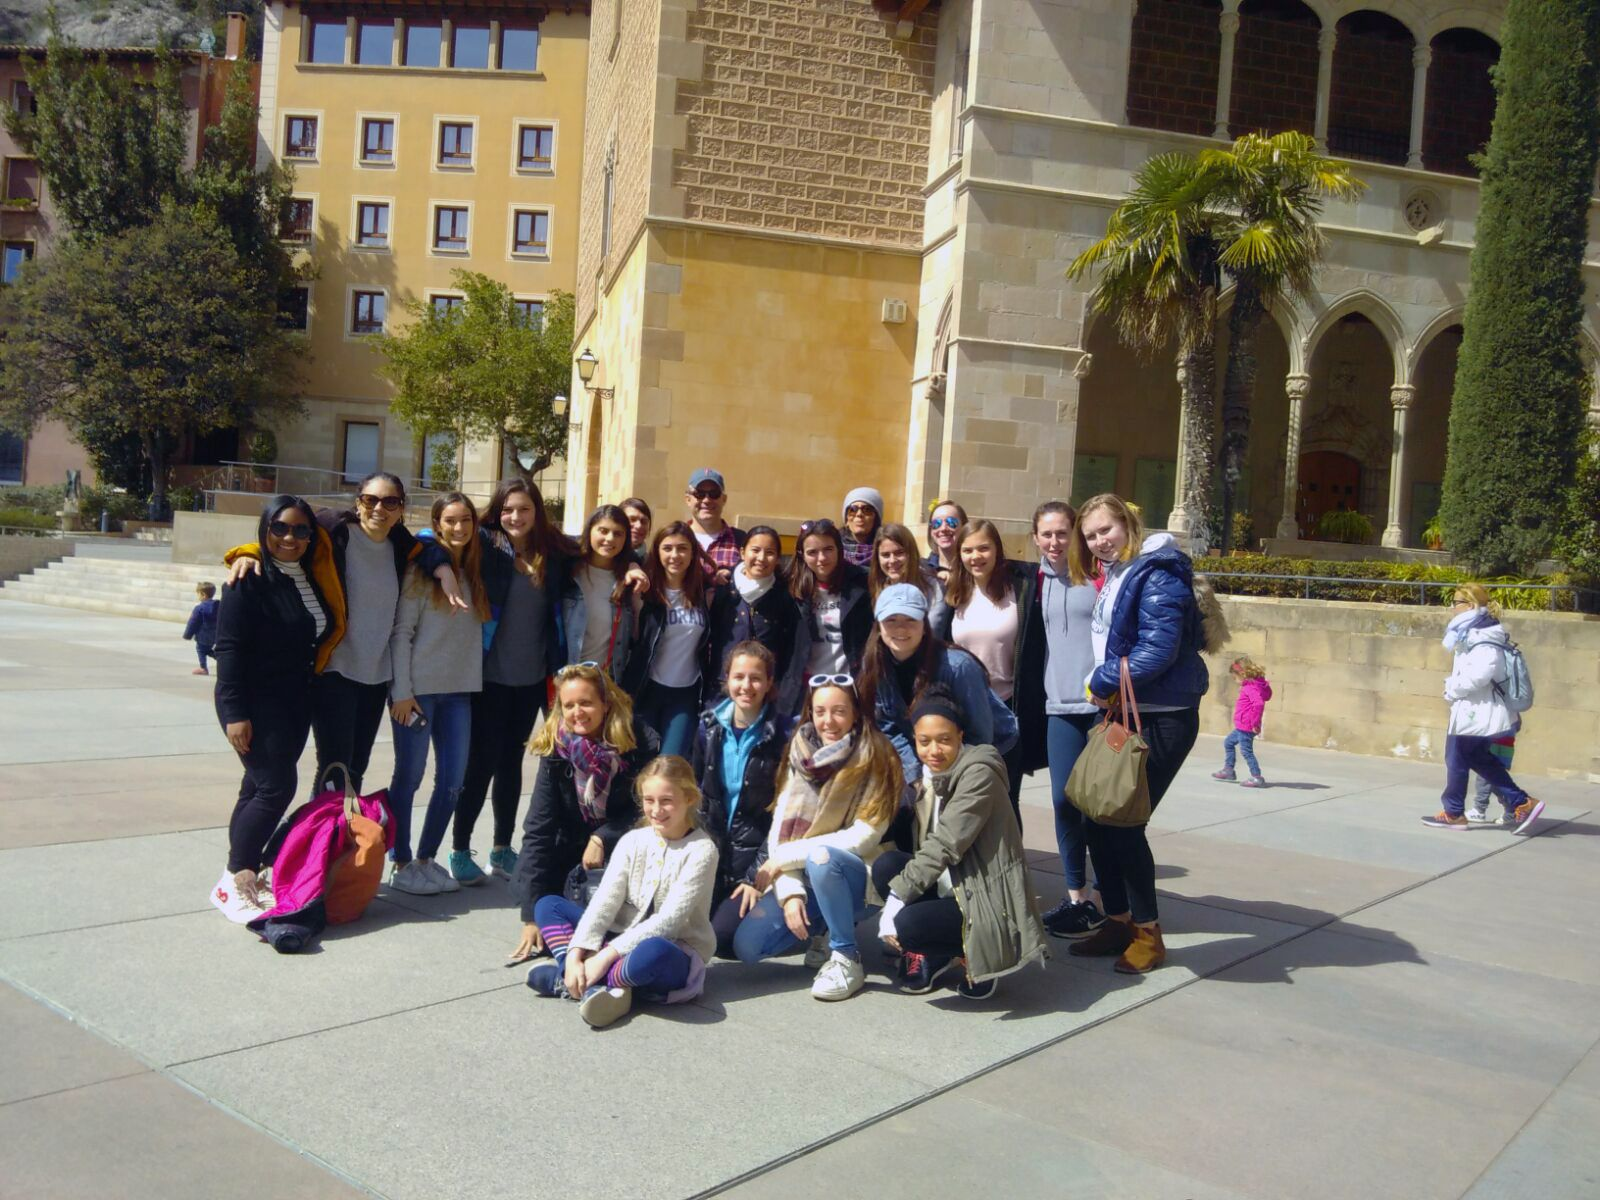 Students also visited the Shrine of Monserrat, a popular pilgrimage spot in Barcelona who has welcomed such visitors since as far back as the 12th century!